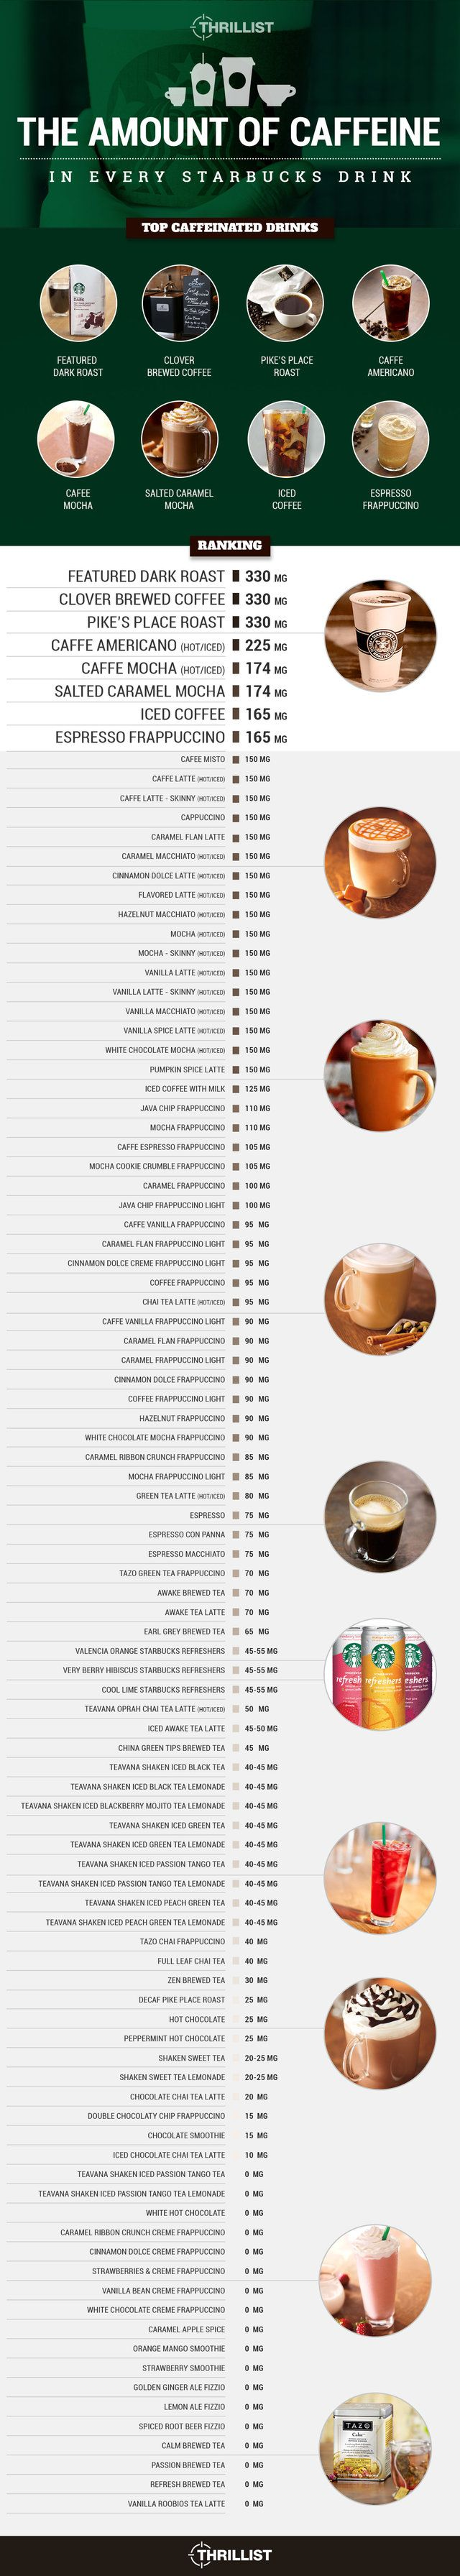 The amount of #caffeine in every Grande sized #Starbucks drink. I've been a lightweight thus far - need to go for that dark roast next time!!